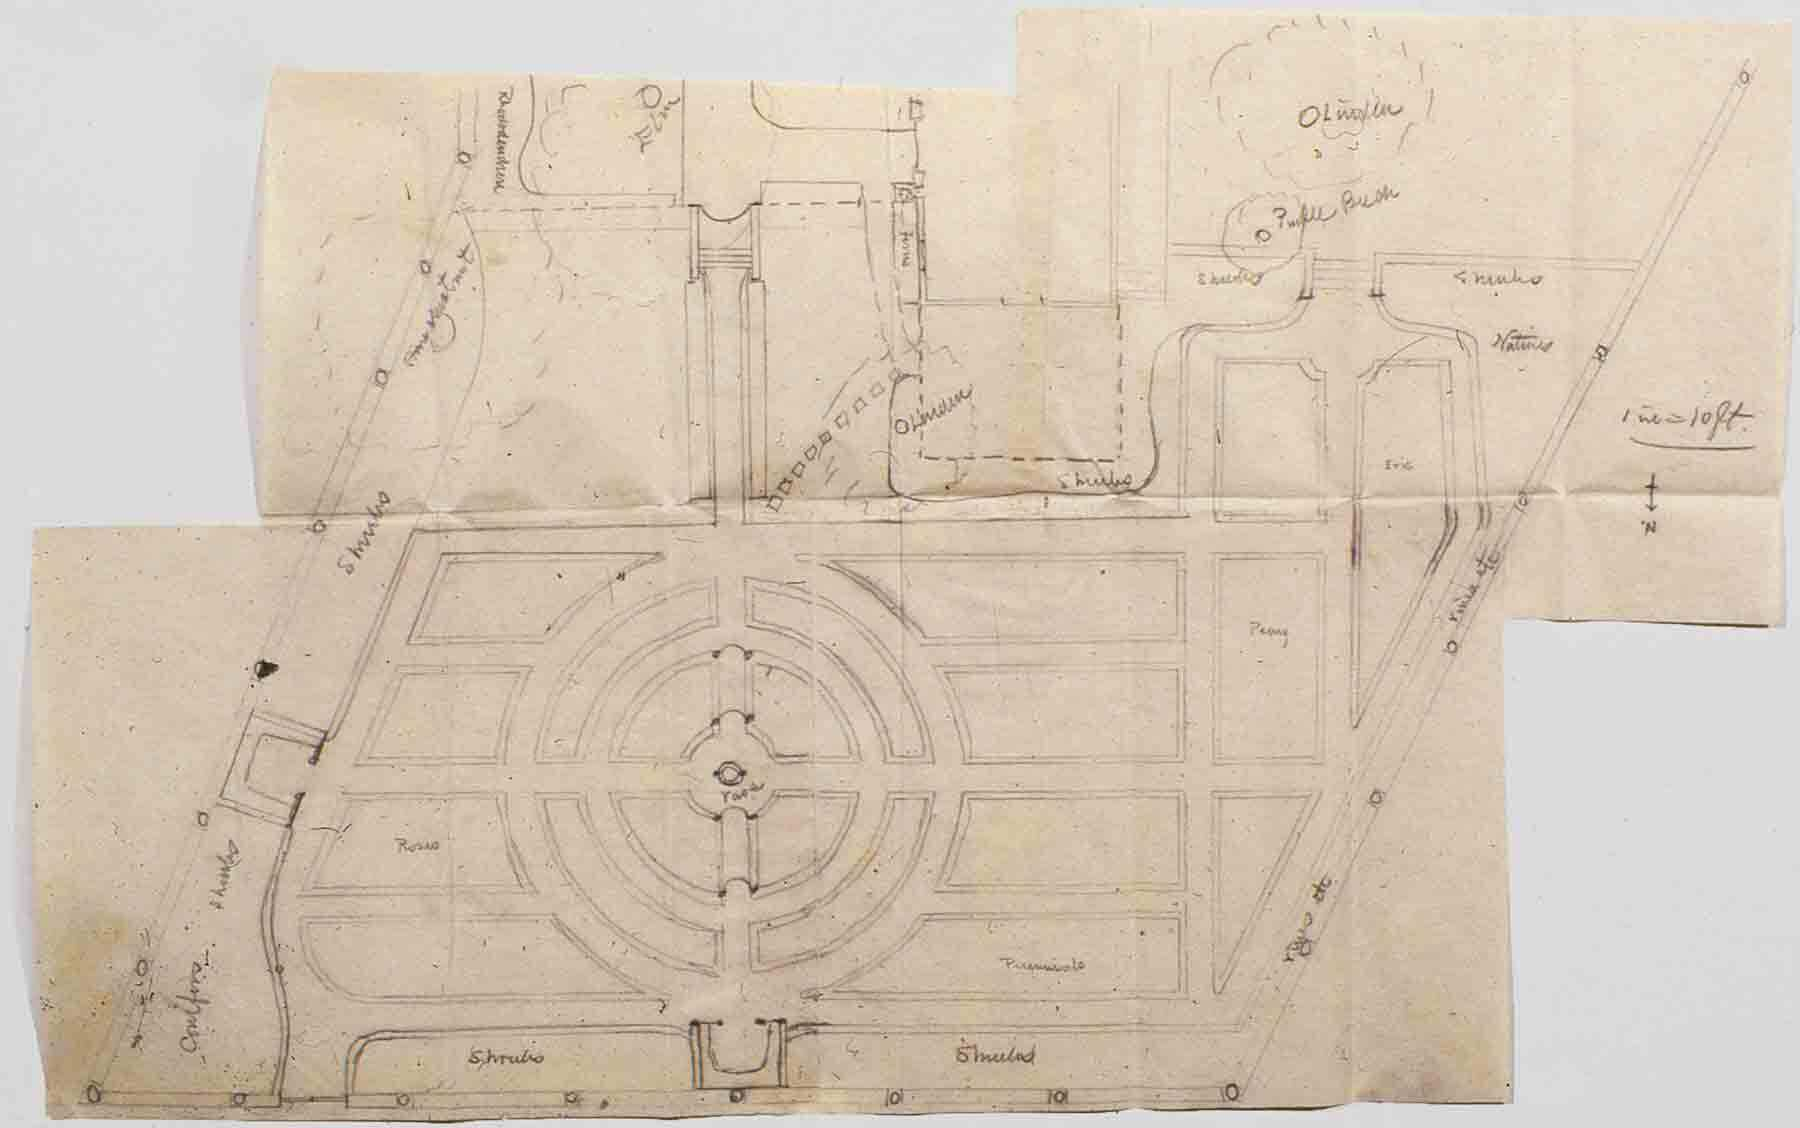 Attributed to John Robinson (designer), Garden Plan of the Ropes Mansion, undated. Pencil and paper. Trustees of the Ropes Memorial Records. MSS 191. Peabody Essex Museum.